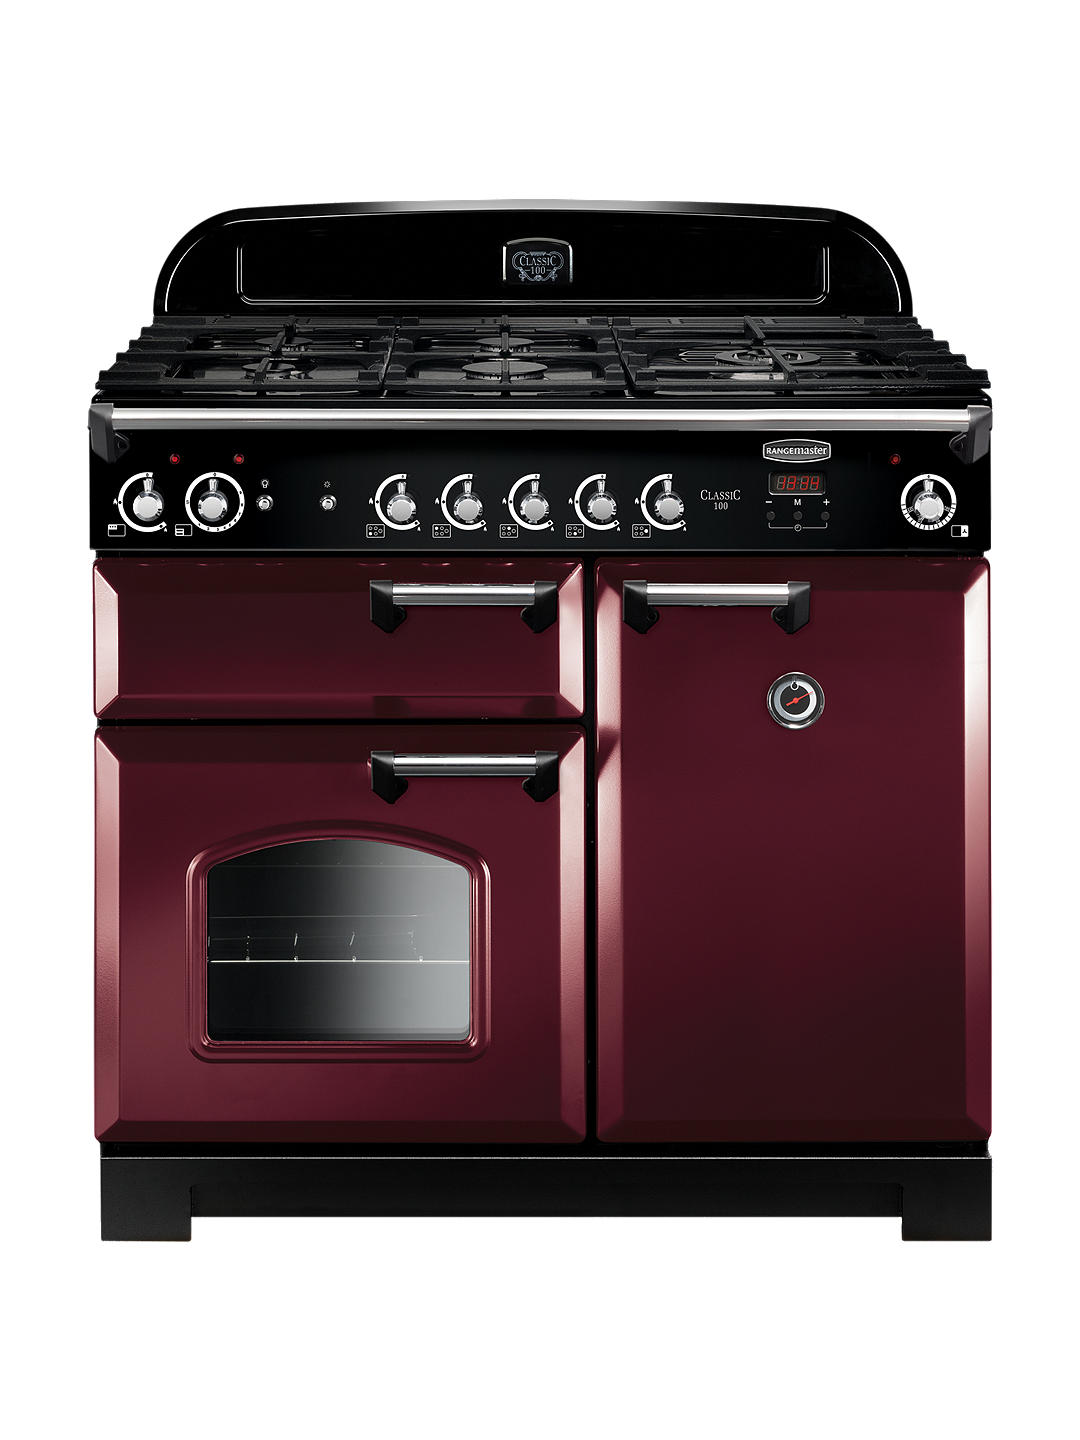 Buy Rangemaster Classic 100 Gas Range Cooker, Cranberry Online at johnlewis.com